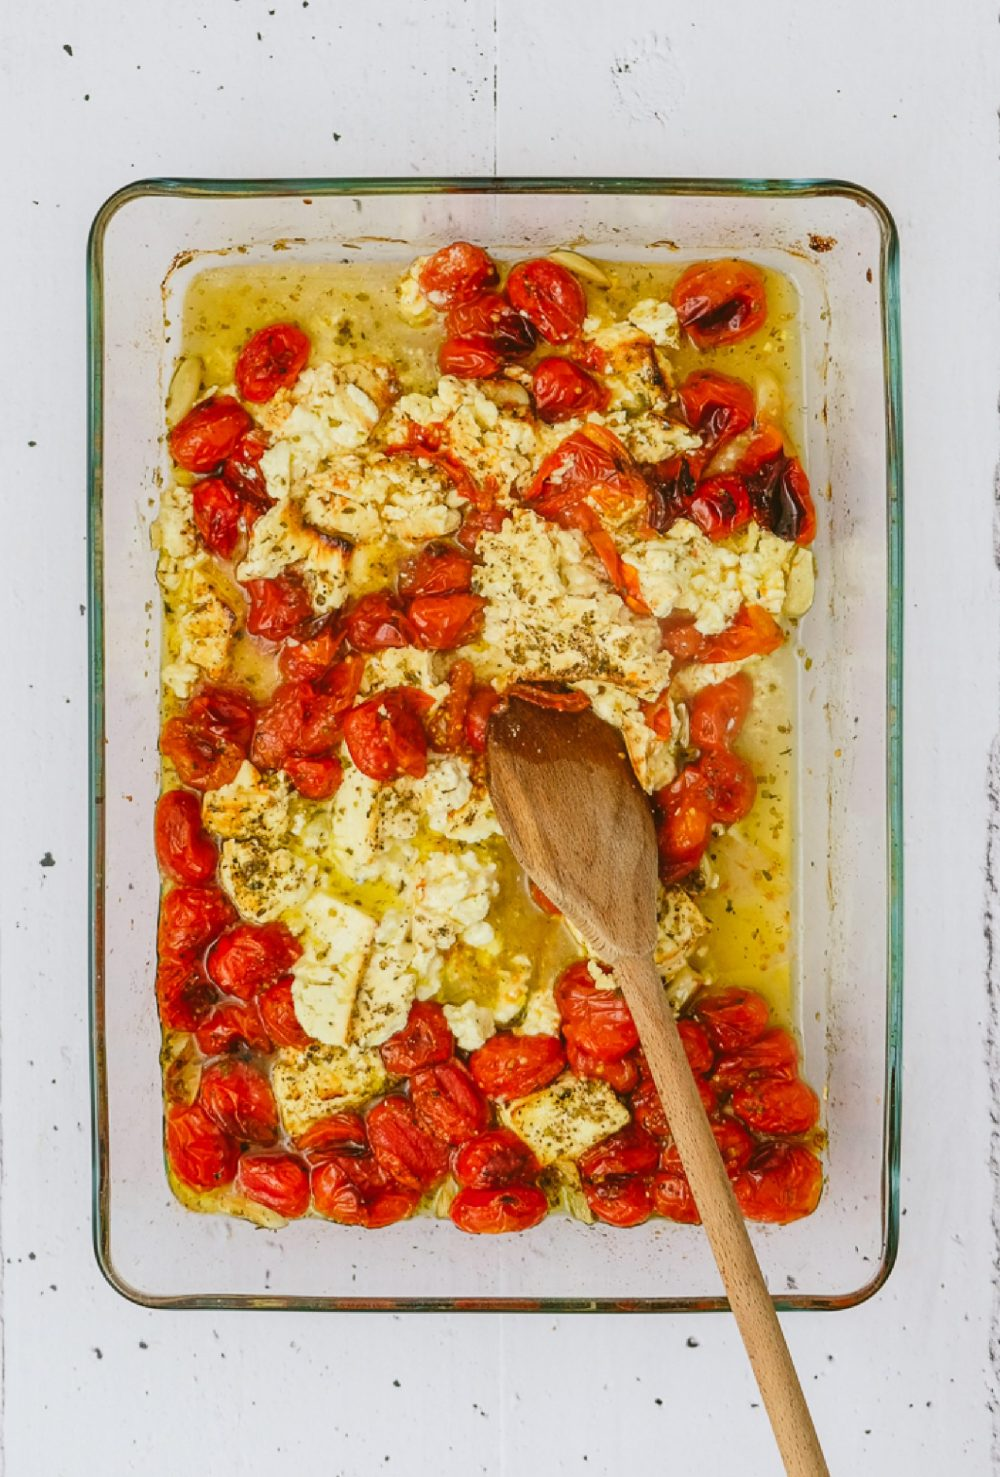 Easy Baked Feta and Ricotta Cheese Cherry Tomato Sauce Feature Image